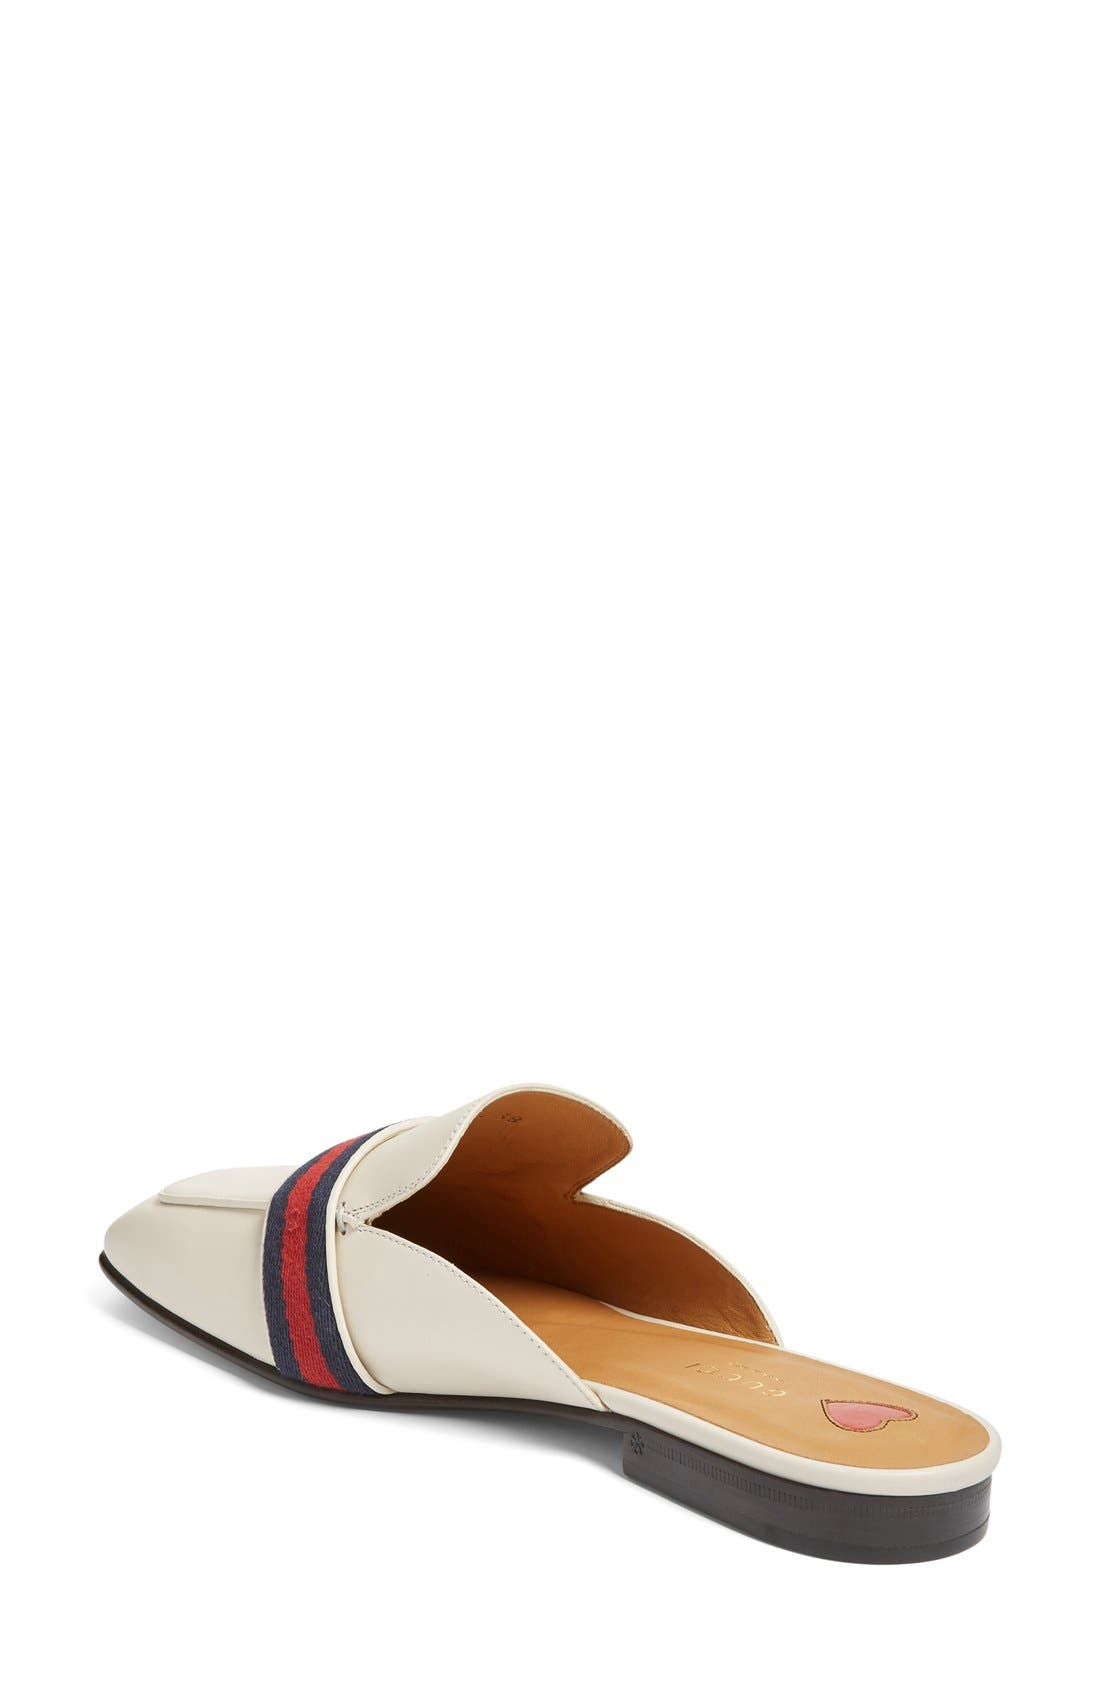 Loafer Mule,                             Alternate thumbnail 2, color,                             White Leather